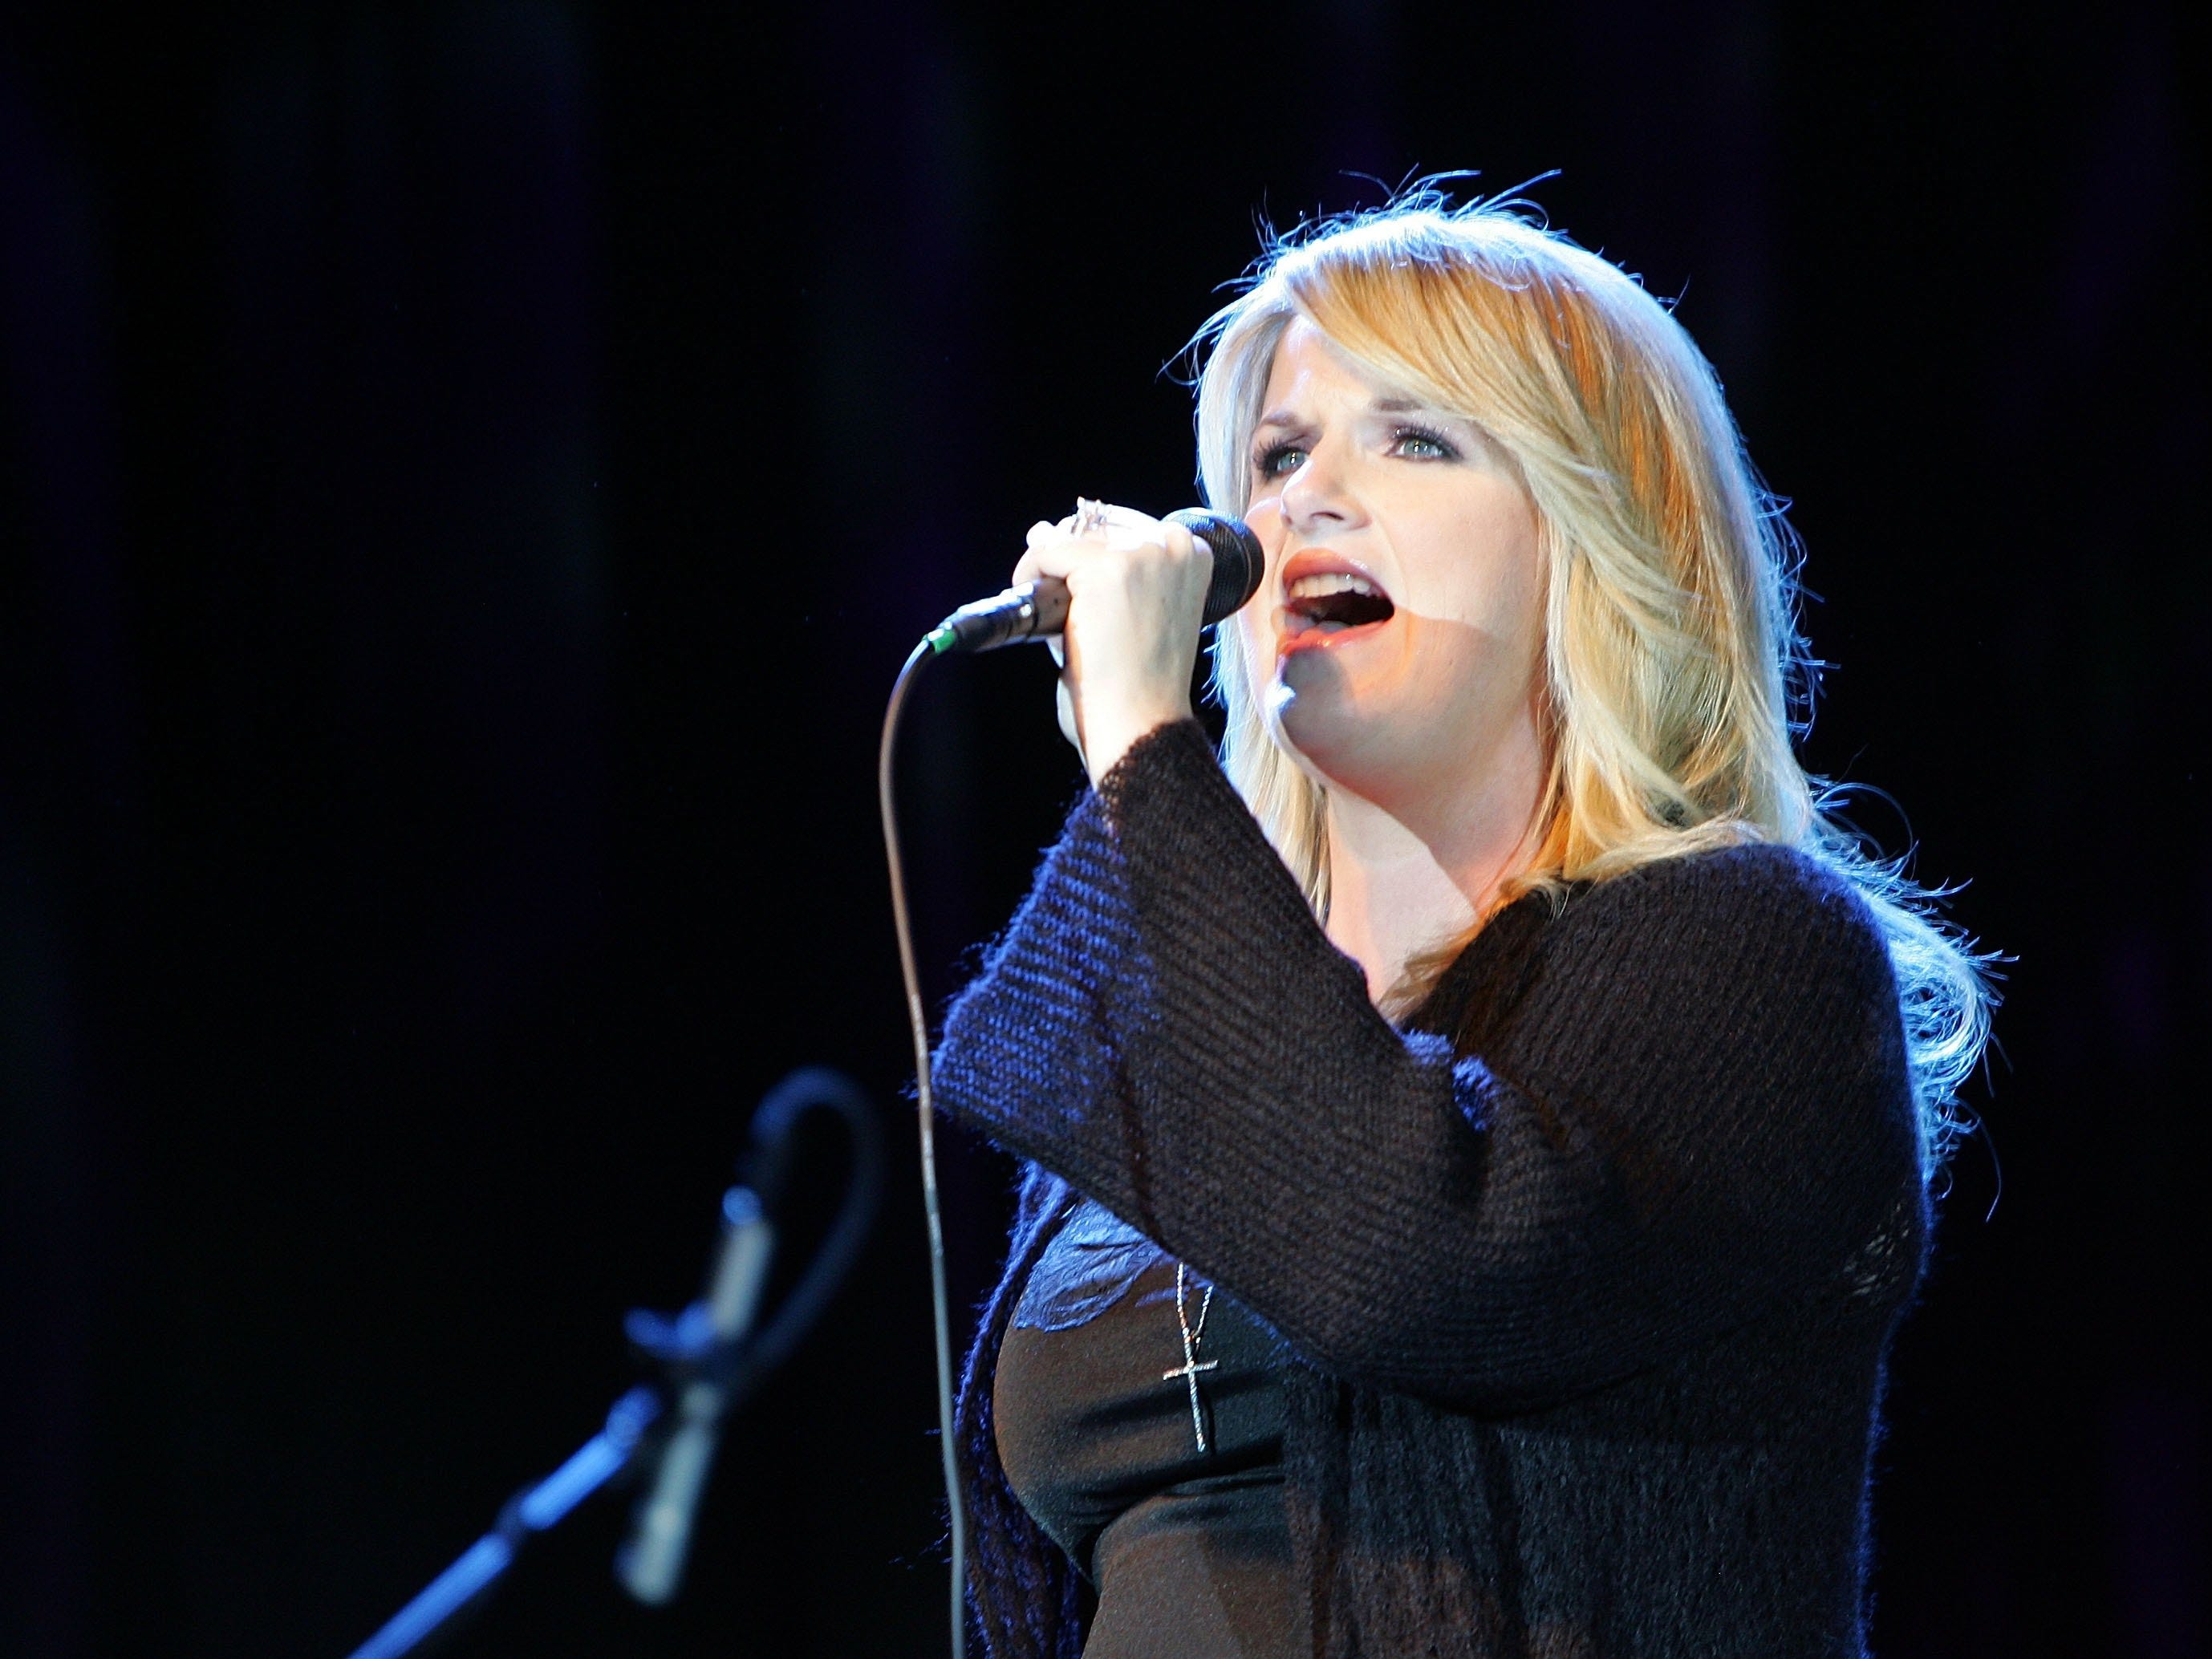 Trisha Yearwood performs during the All-Star Benefit for Garth Brooks' Teammates for Kids Foundation at the Hyatt Regency Dallas January 22, 2007 in Dallas, Texas.